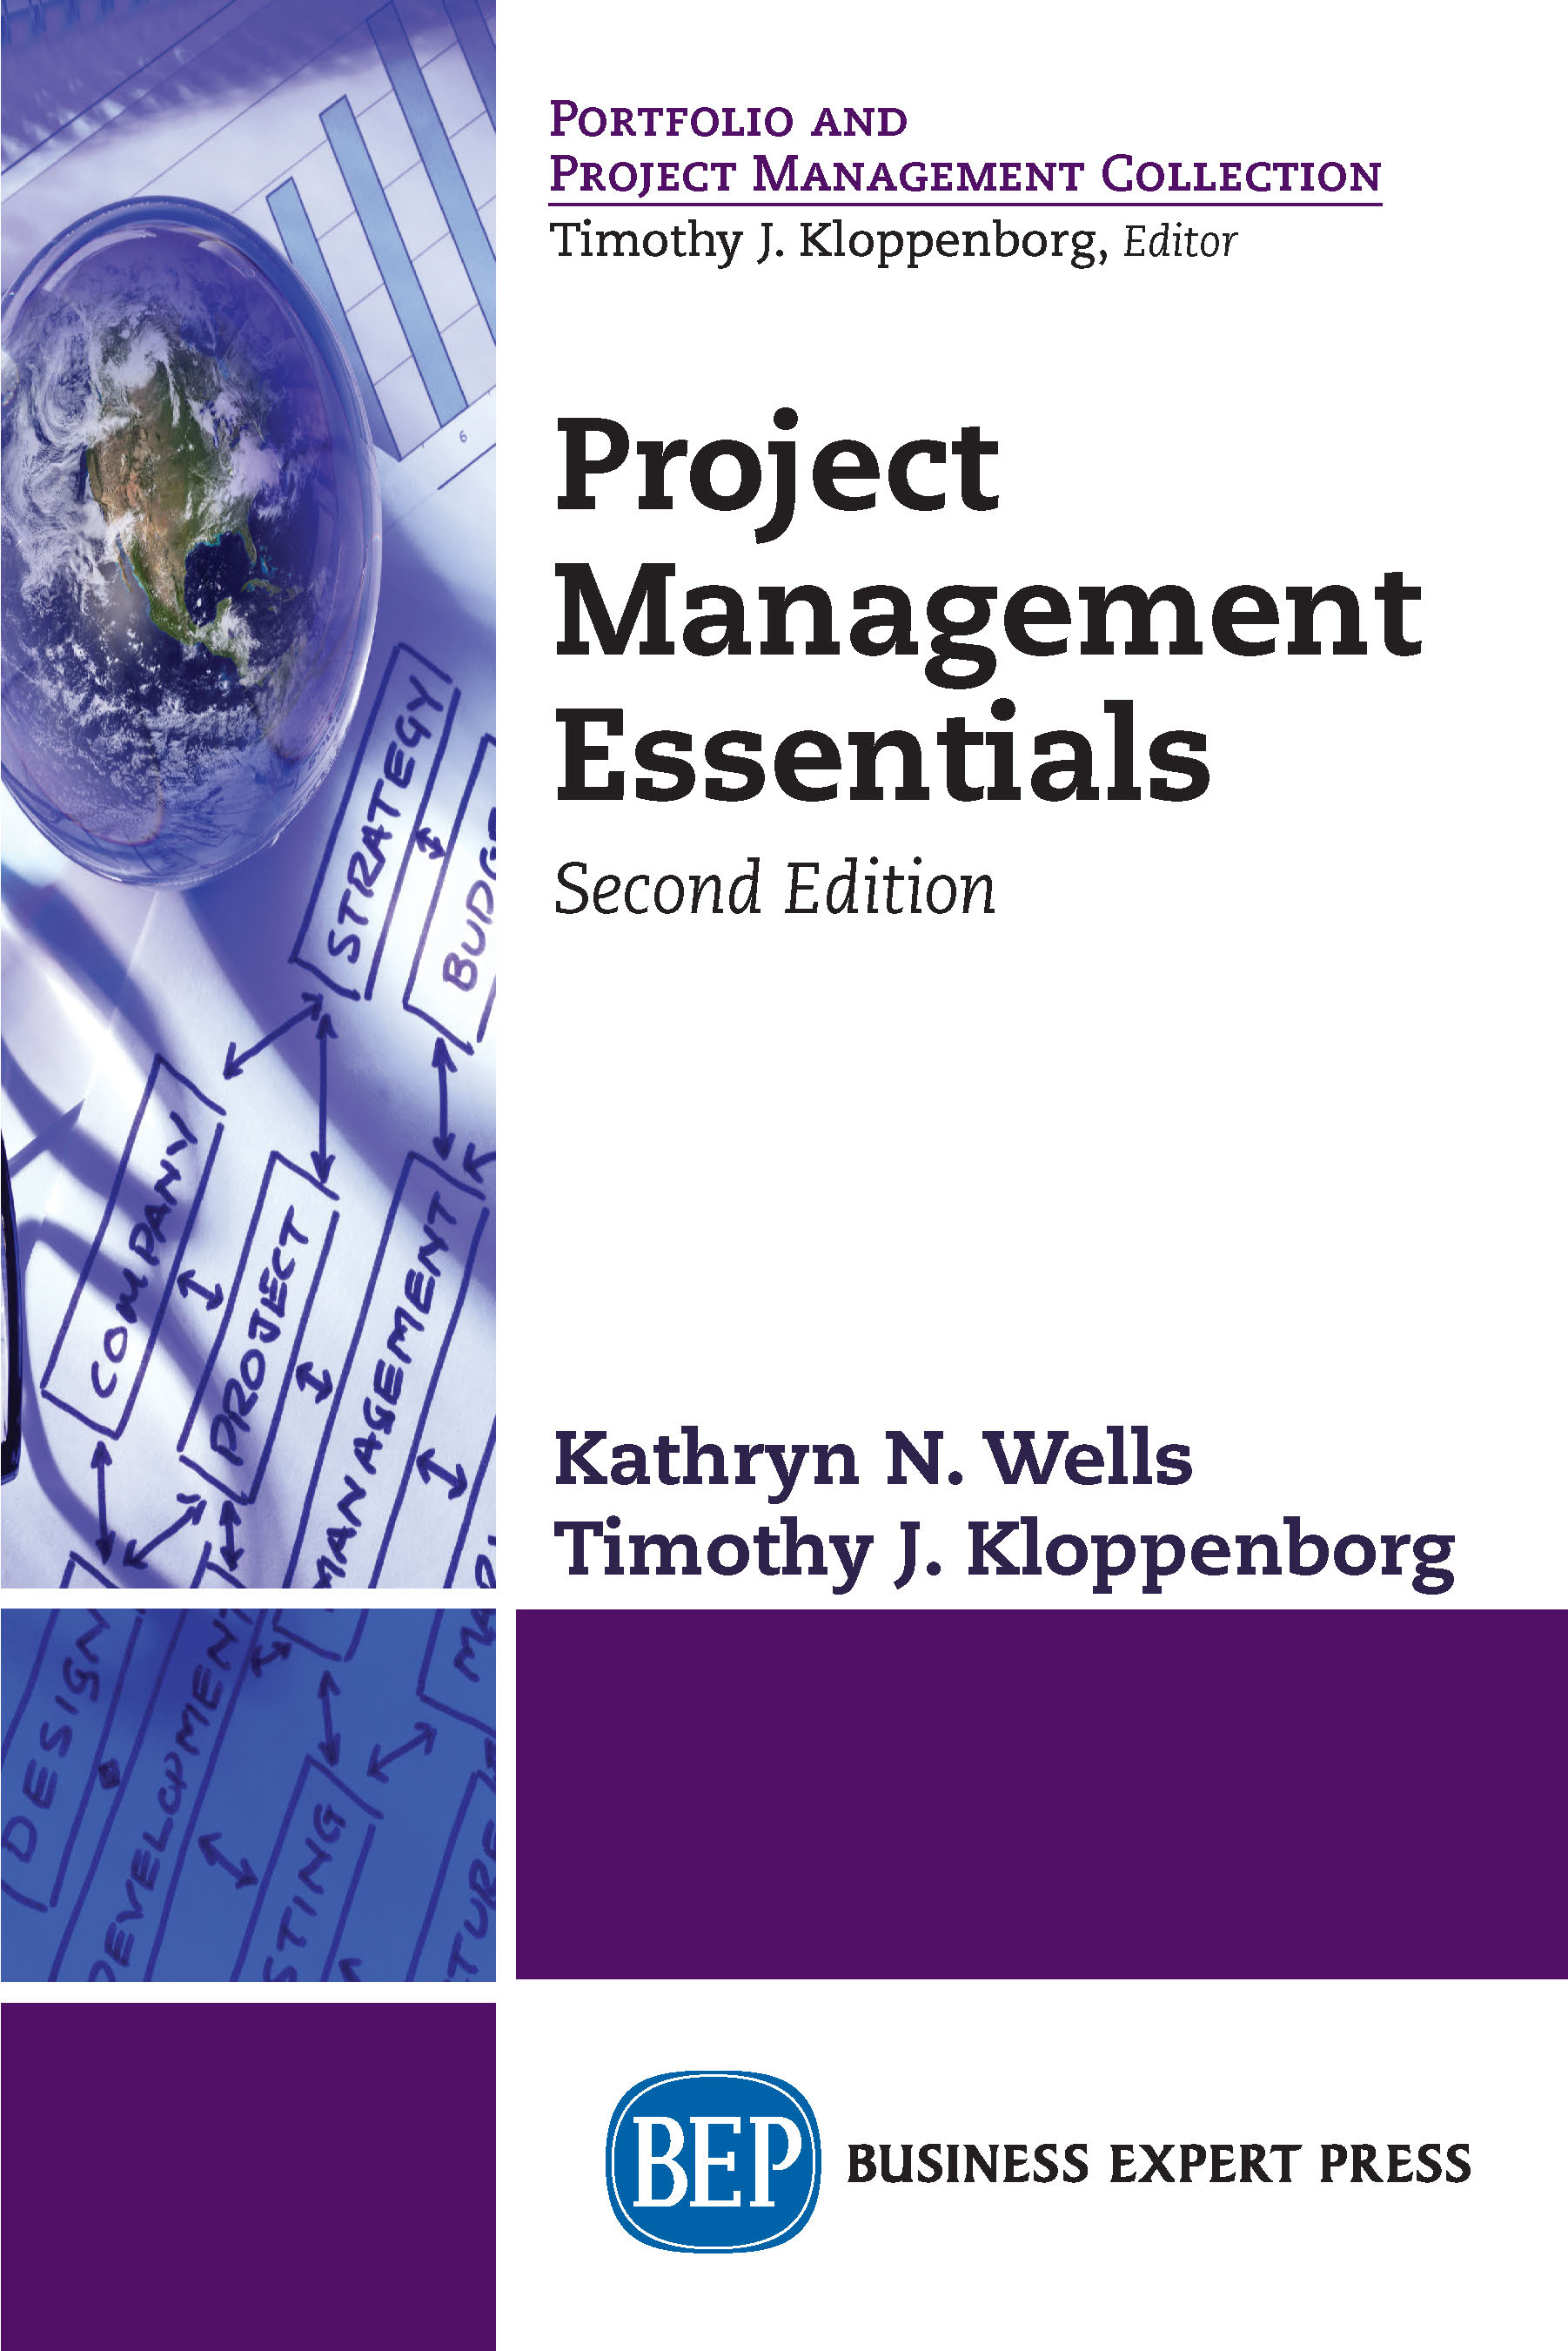 Download Ebook Project Management Essentials, Second Edition (2nd ed.) by Kathryn N. Wells Pdf